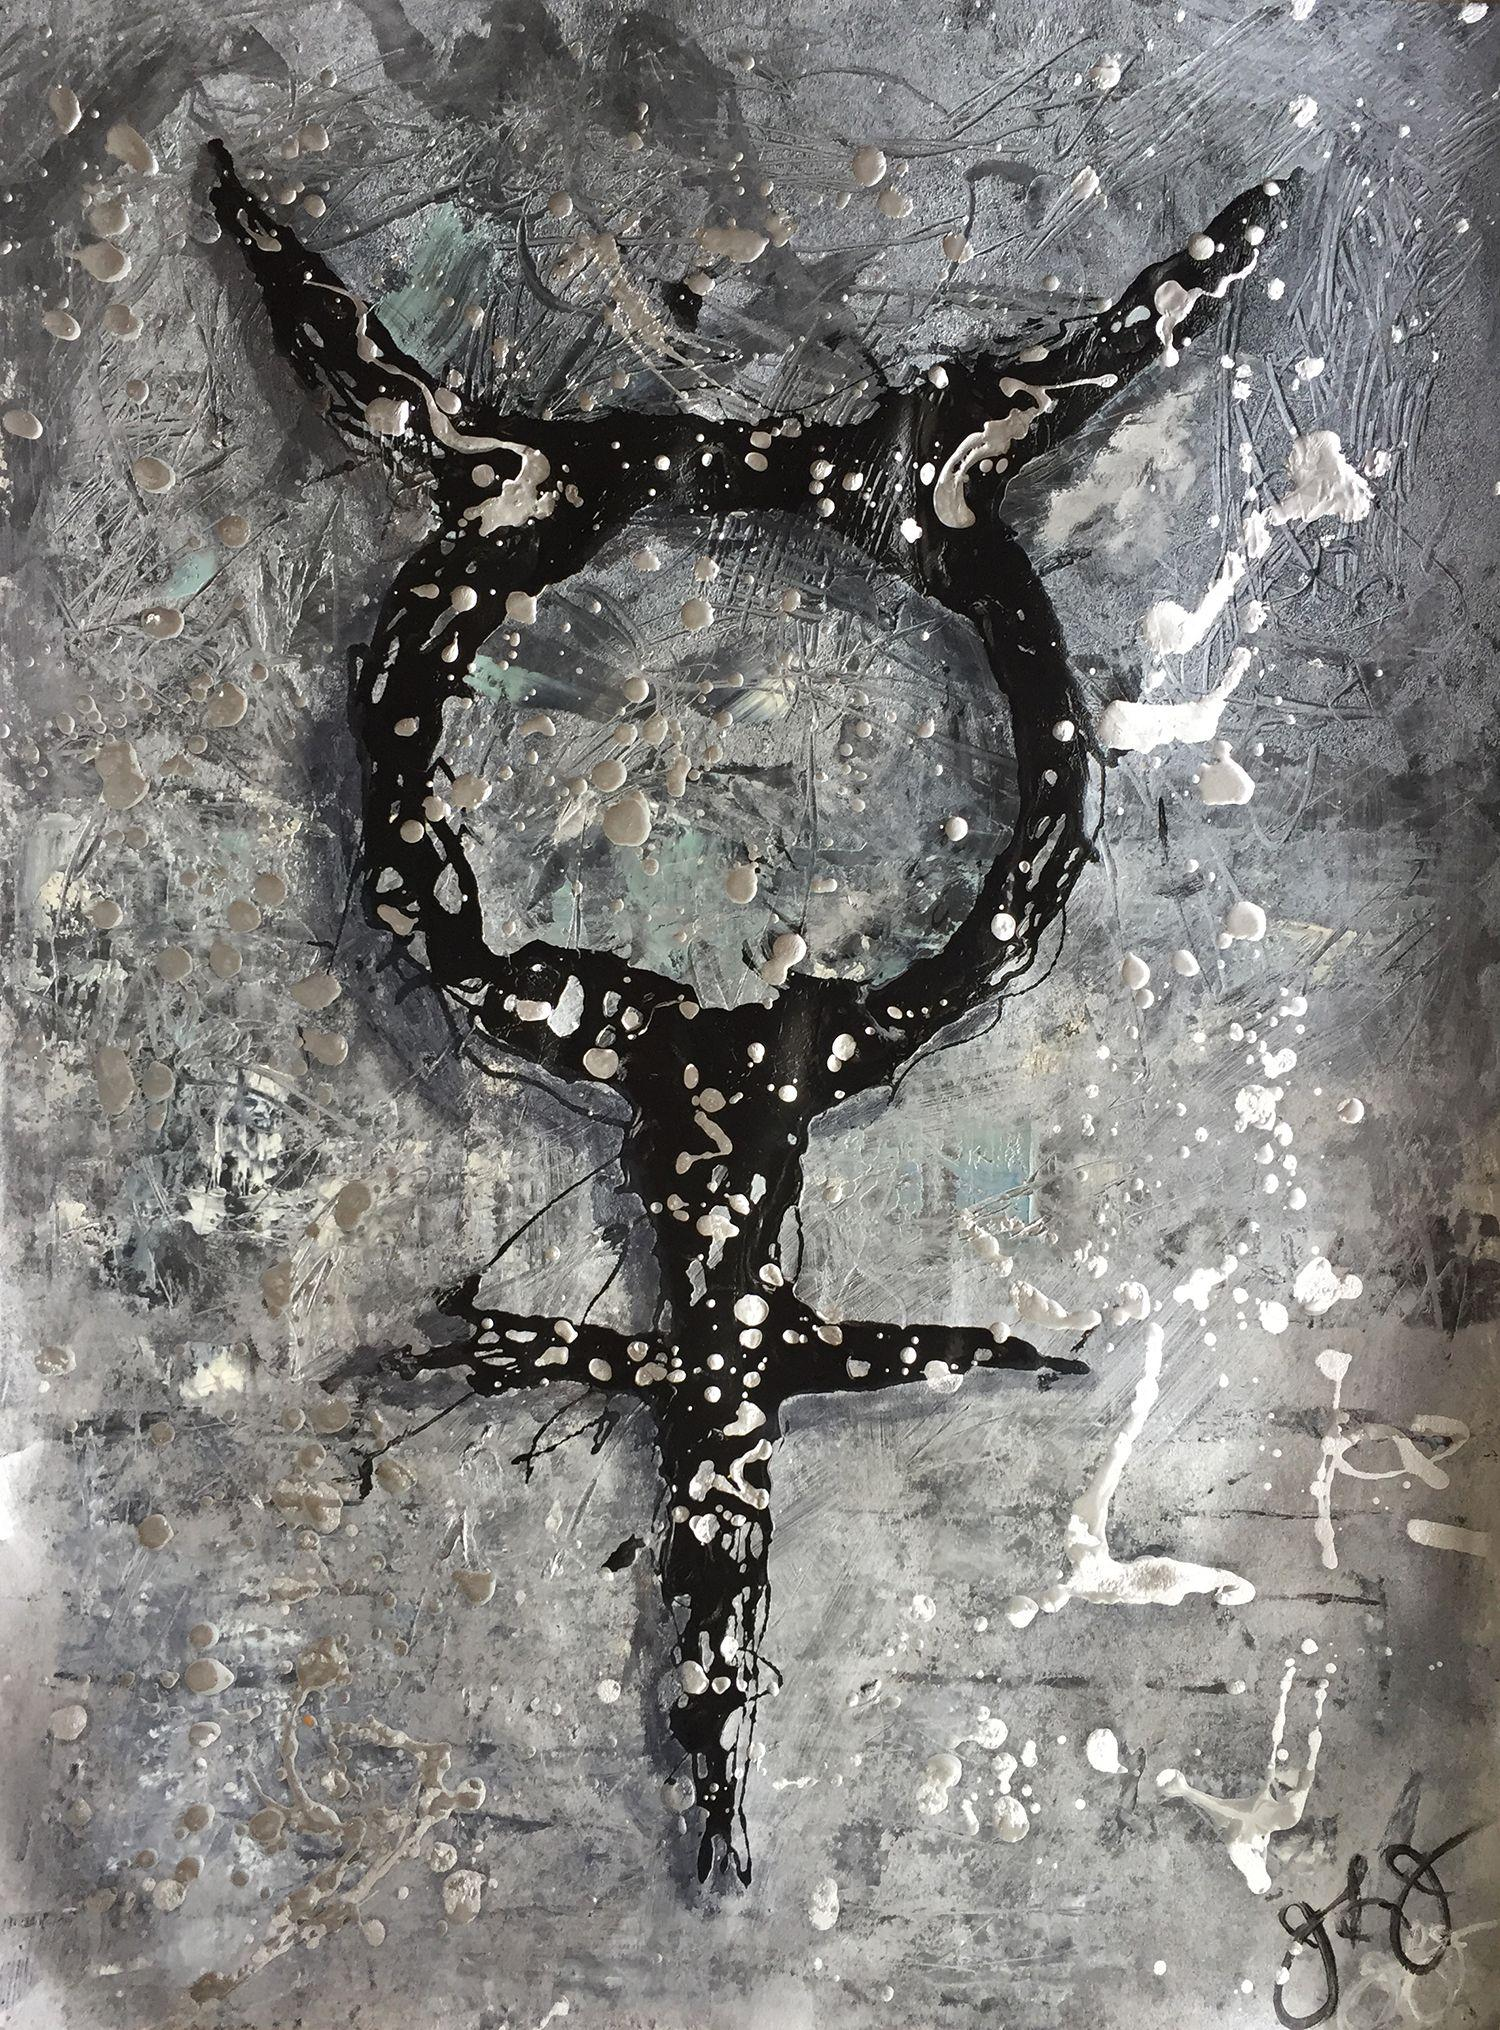 glyph 2., Mixed Media on Paper